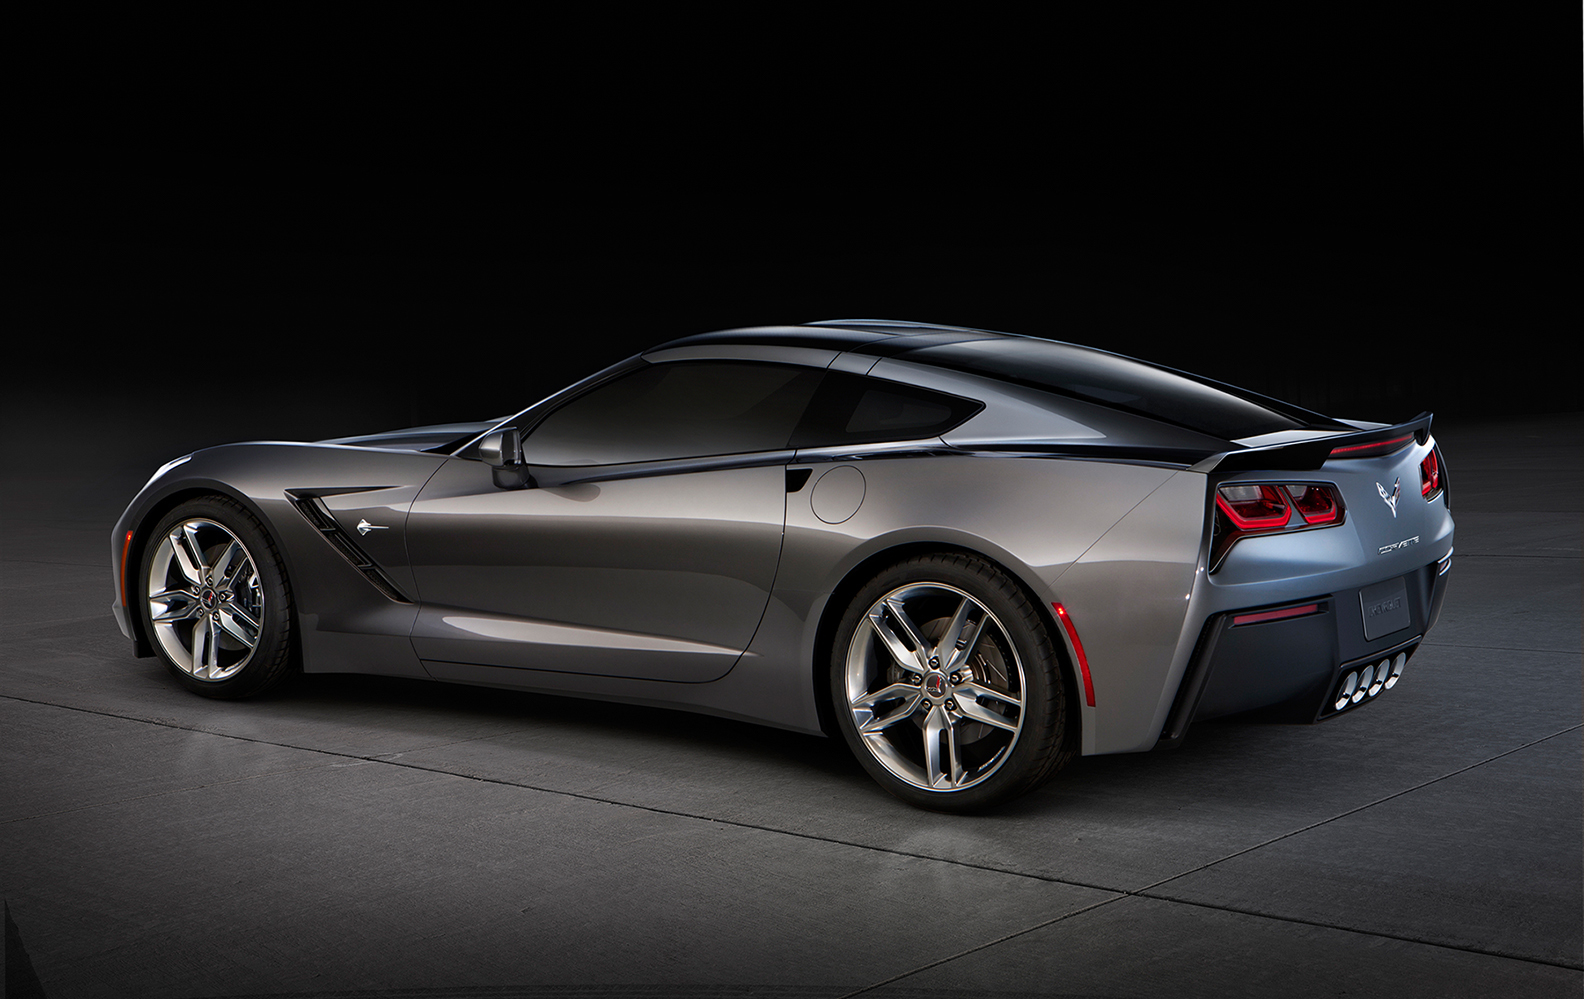 Mobil 1 Giving Away 2014 Corvette Stingray. (Photo: Business Wire)